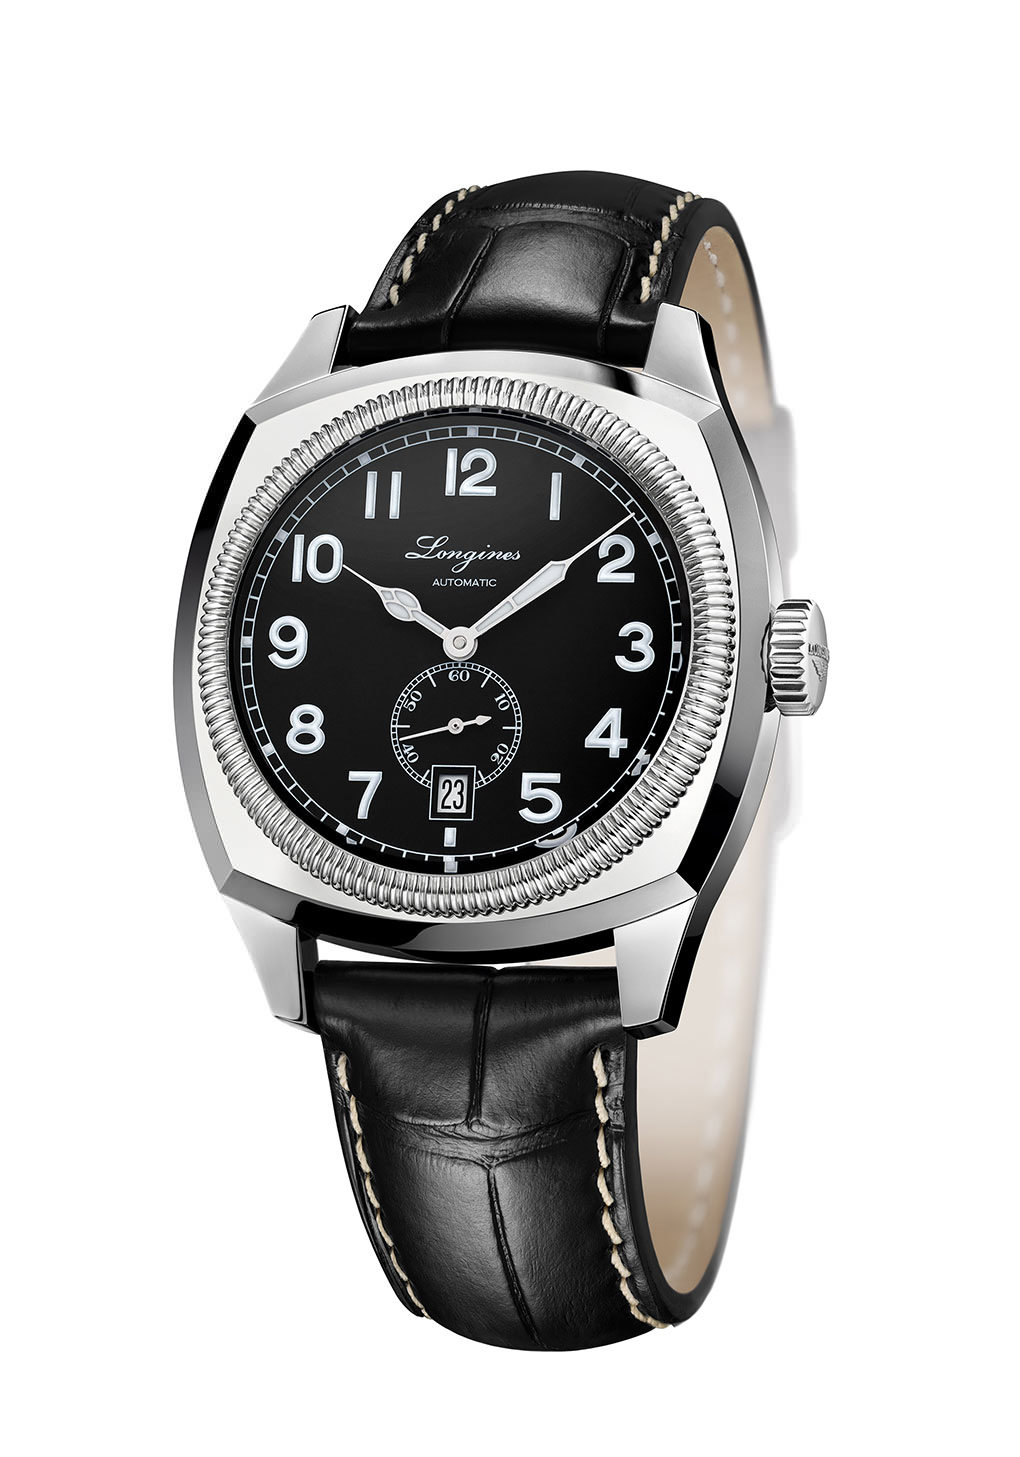 the-longines-heritage-1935-re-issue-of-a-highly-successful-design